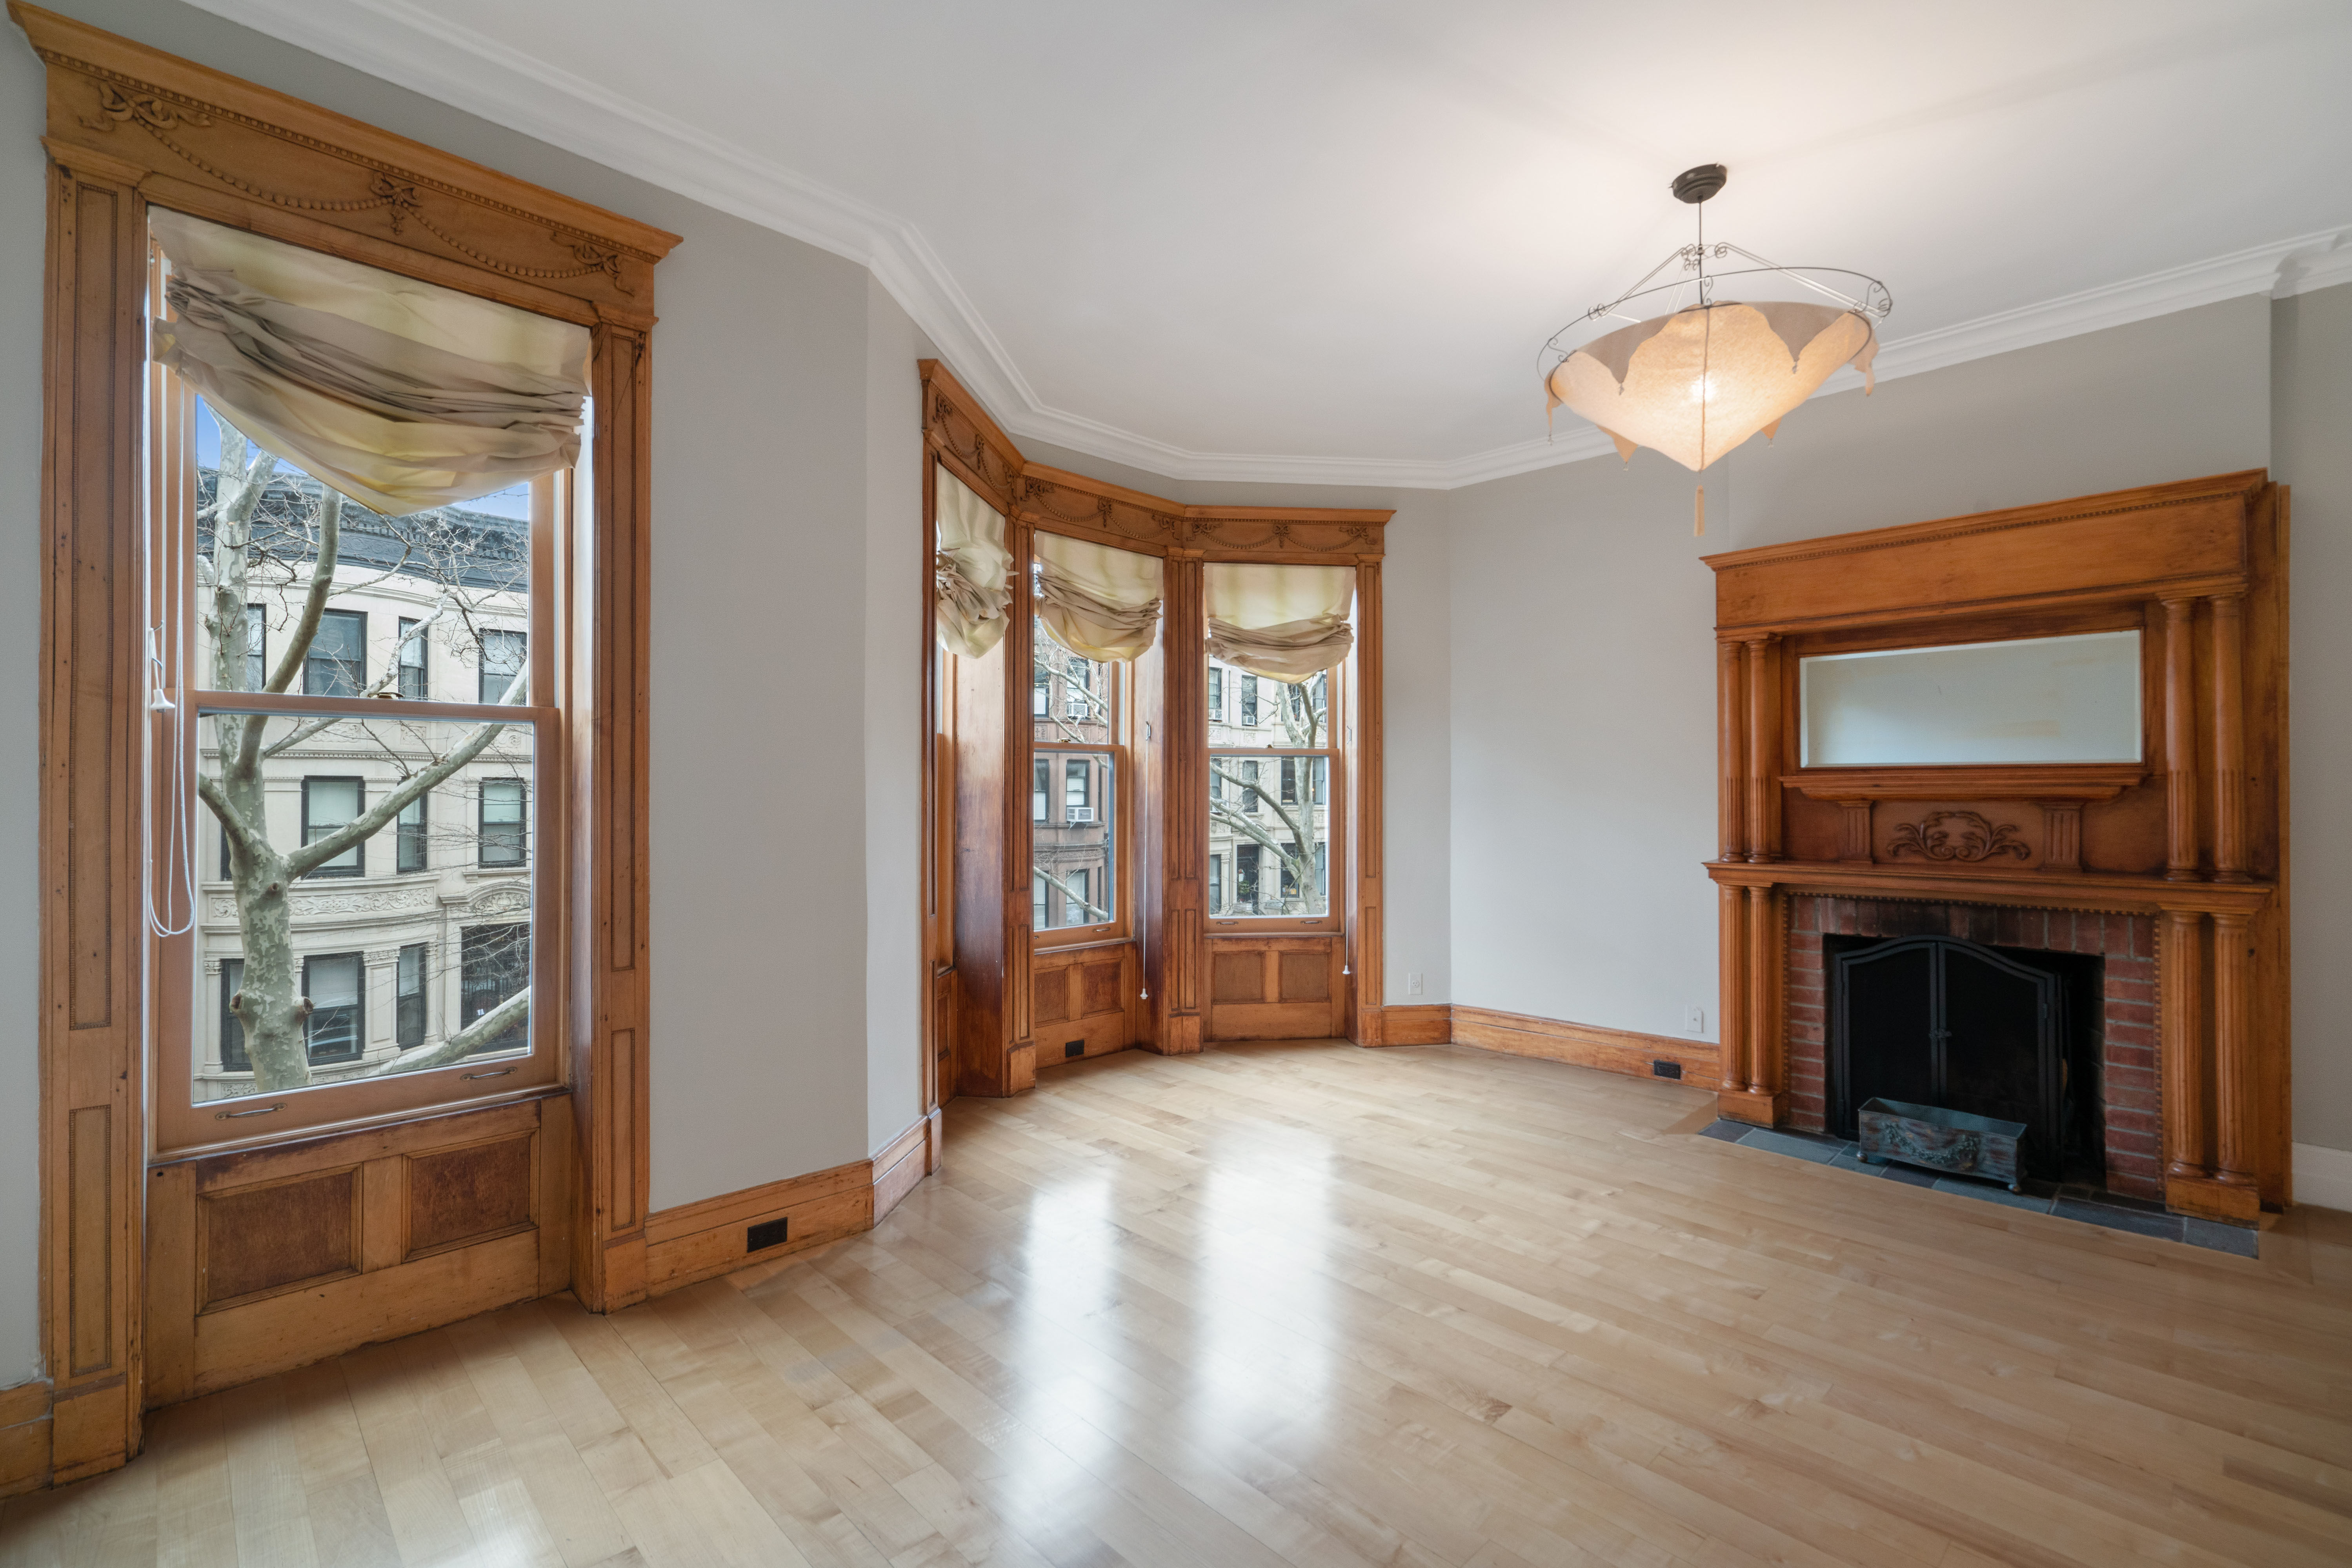 594 2nd St Photo 13 - BROWNSTONER-LISTING-47512a55ccfbbeb19b0a8fb315f62163